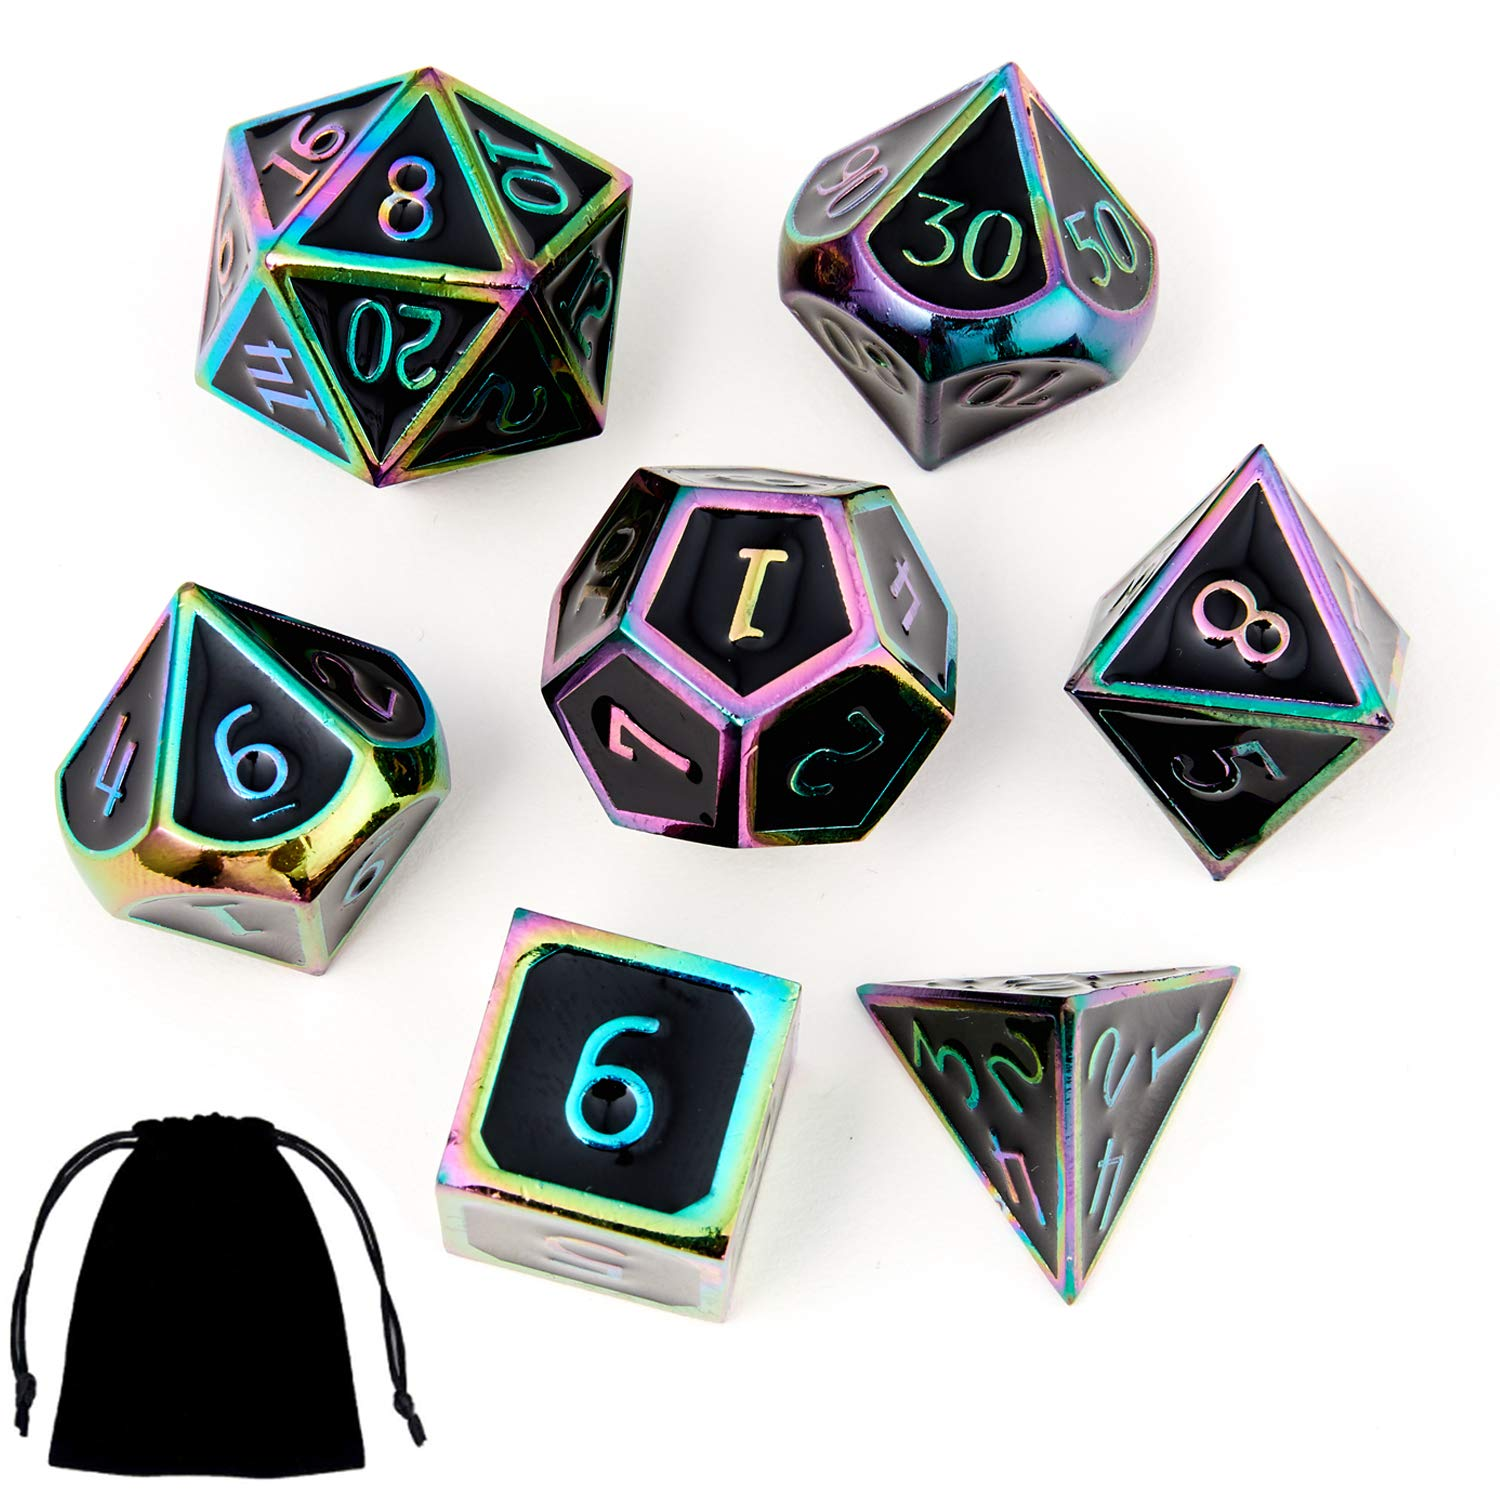 Dungeons and Dragons Metal Dice Set DND 7Pieces Solid Dice with Gift Dice Bag for D&D Pathfinder Roll Playing Games Dice Collector Board Game Player by MS hong